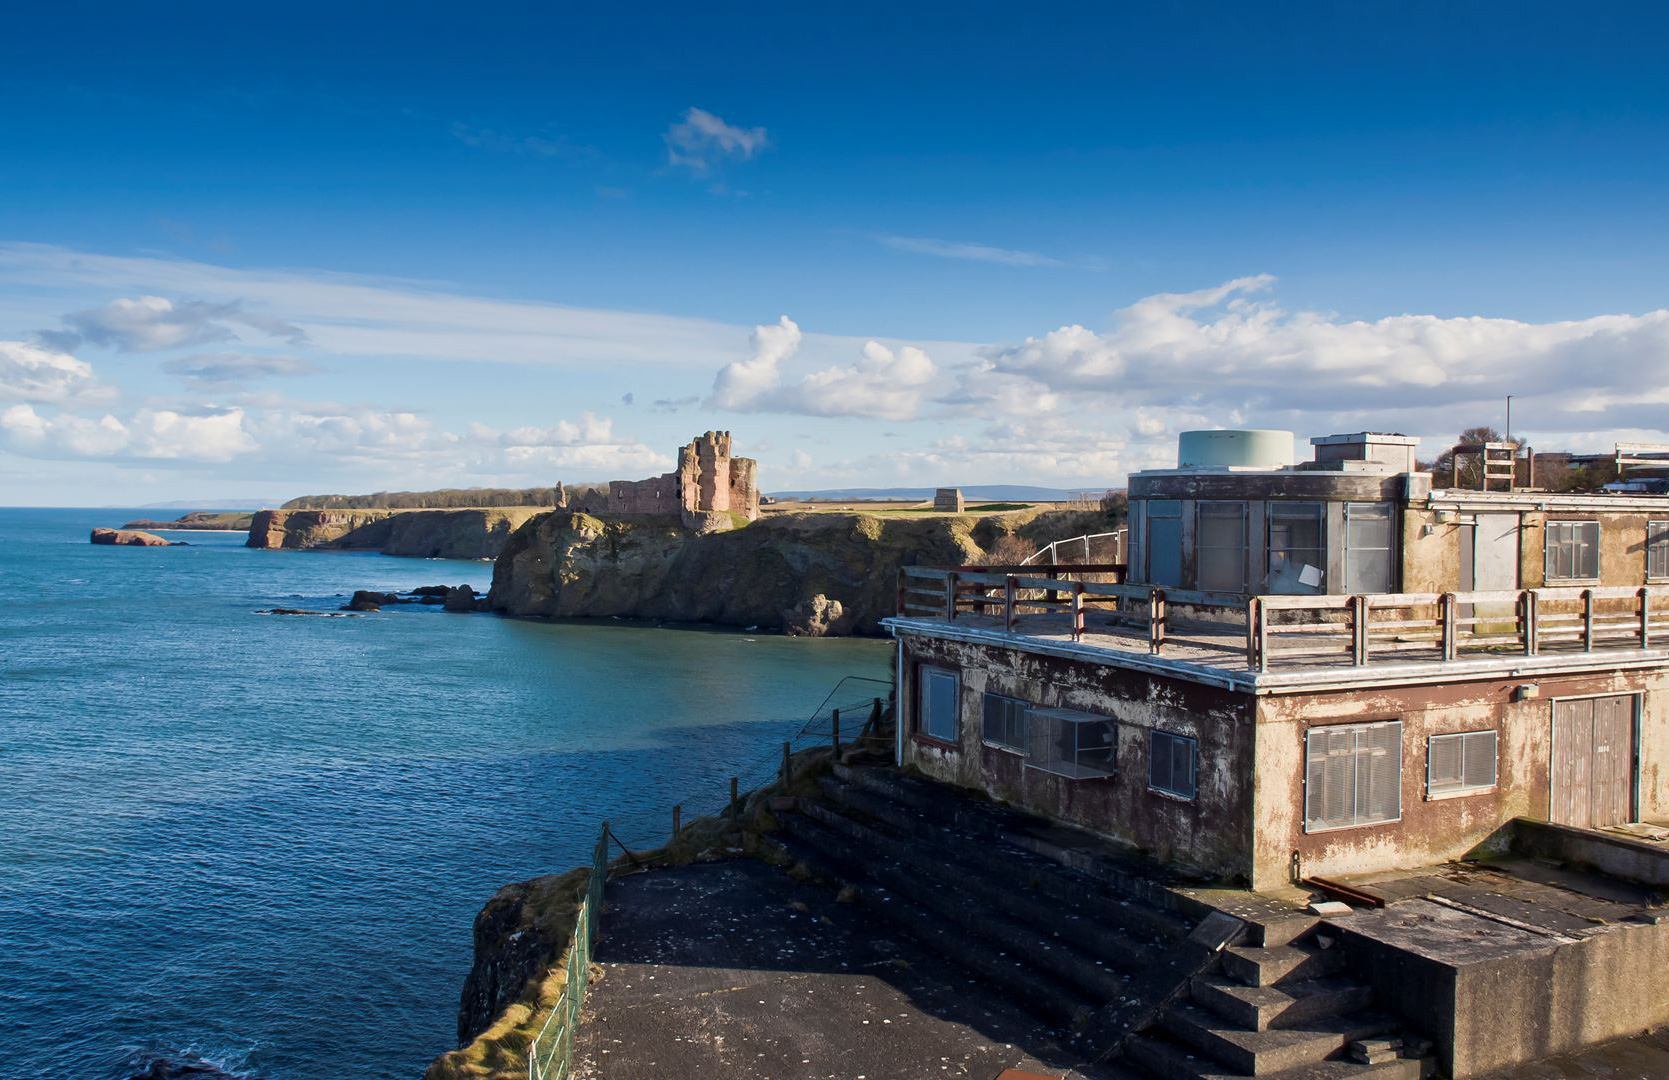 Gin Head - abandoned WWII naval base in Berwick-Upon-Tweed in Scotland